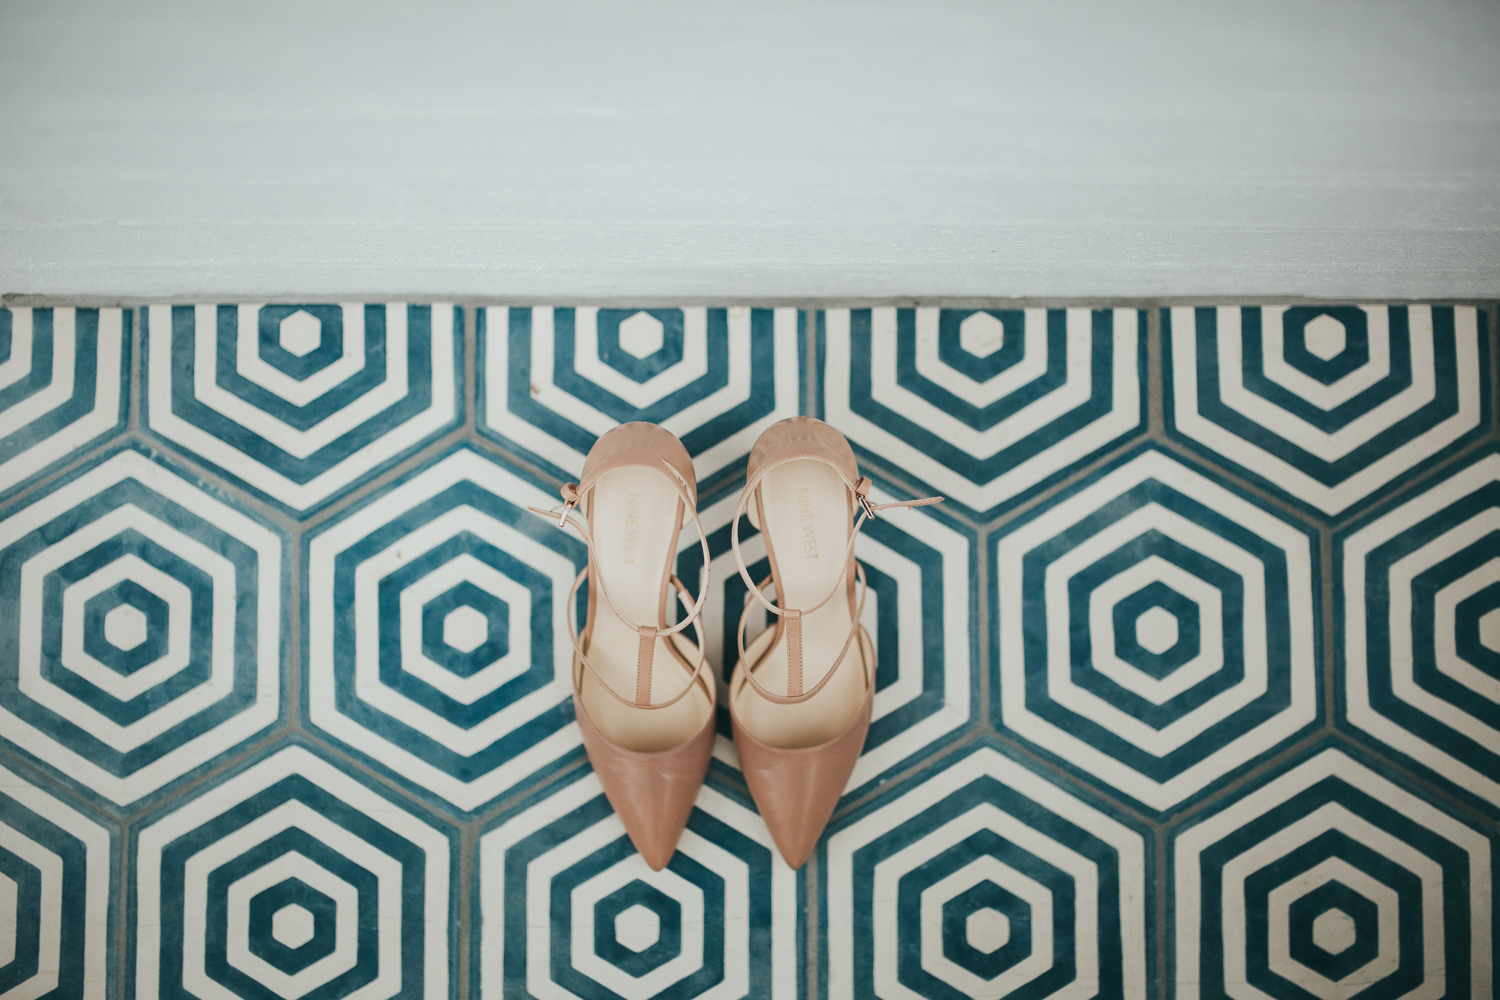 018-halcyon_house_byron_bay_wedding_photographer.jpg